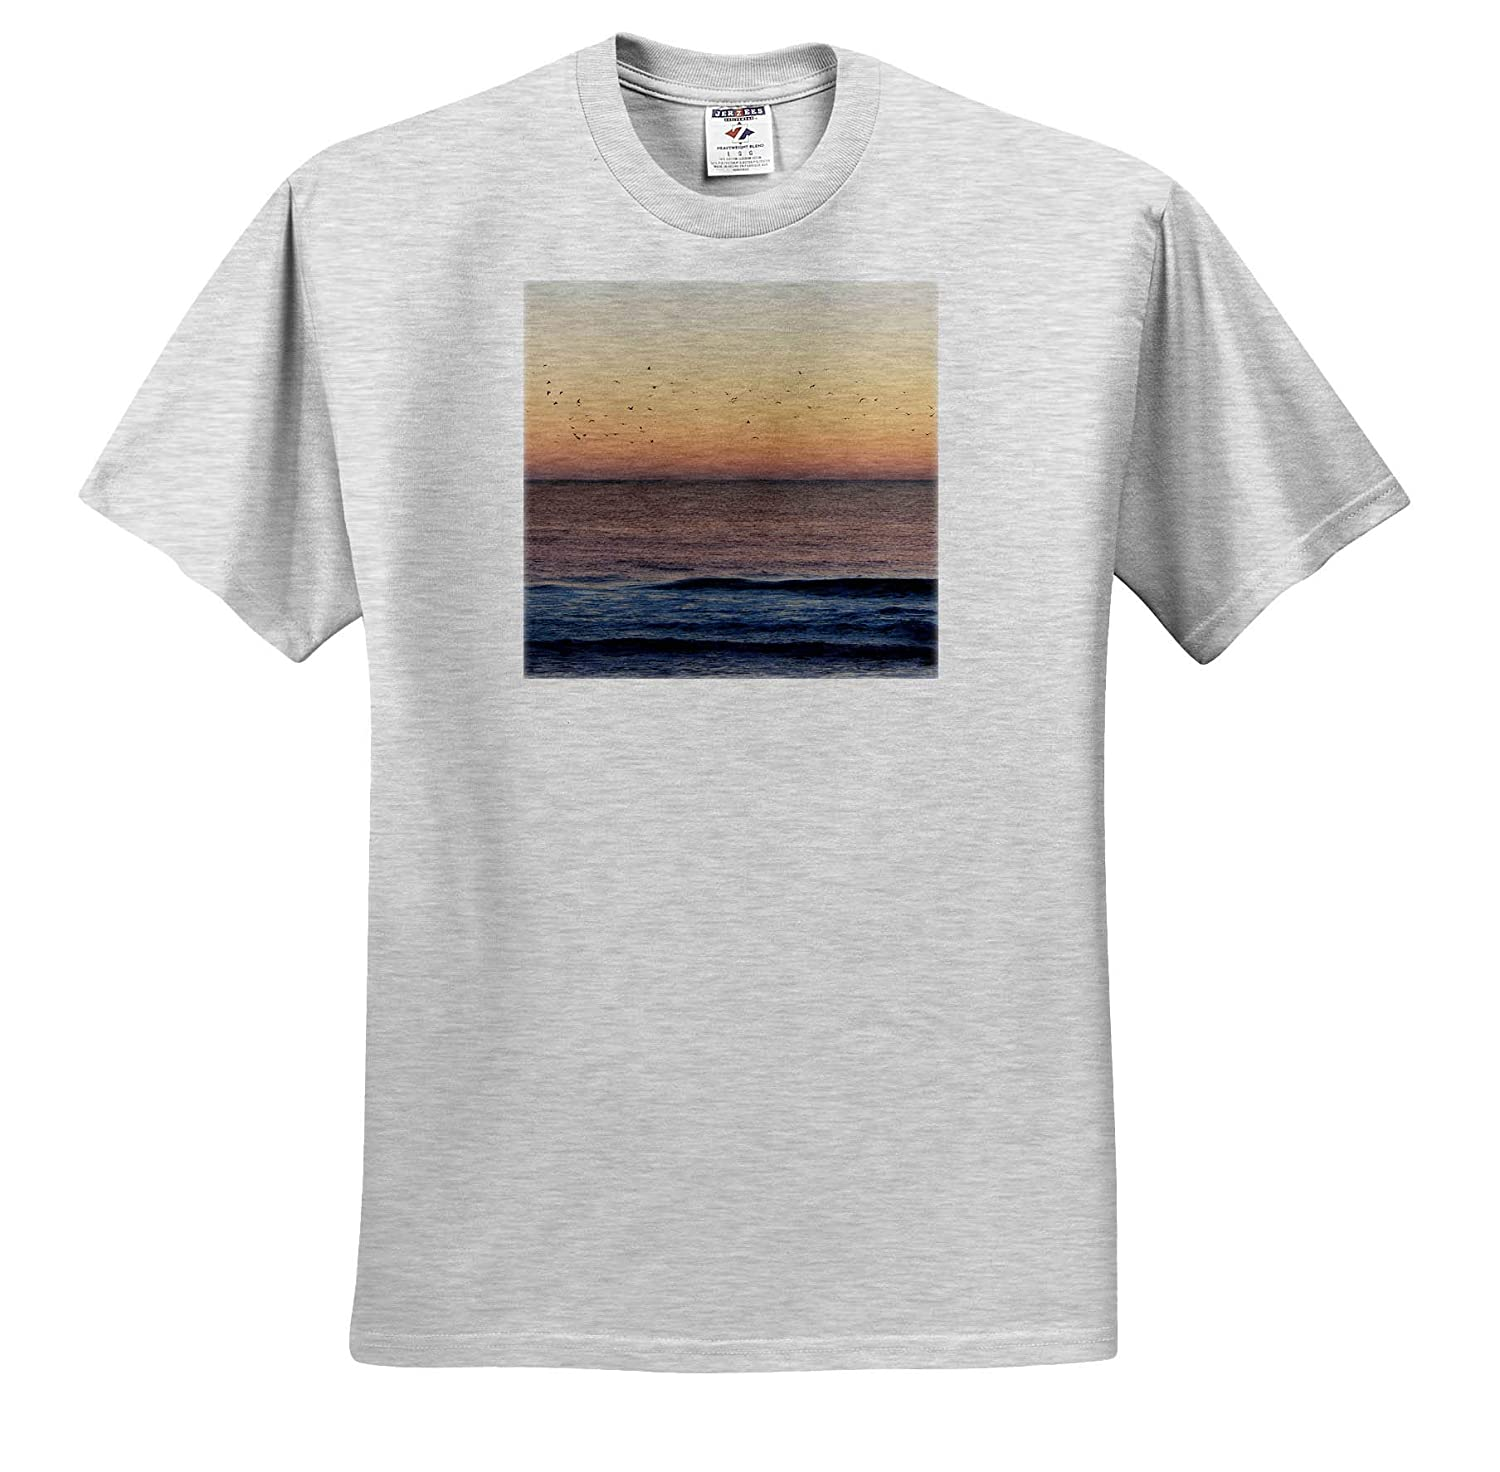 3dRose Stamp City Beach Photo of a Flock of Seagulls Flying at Sunrise at The Jersey Shore - T-Shirts